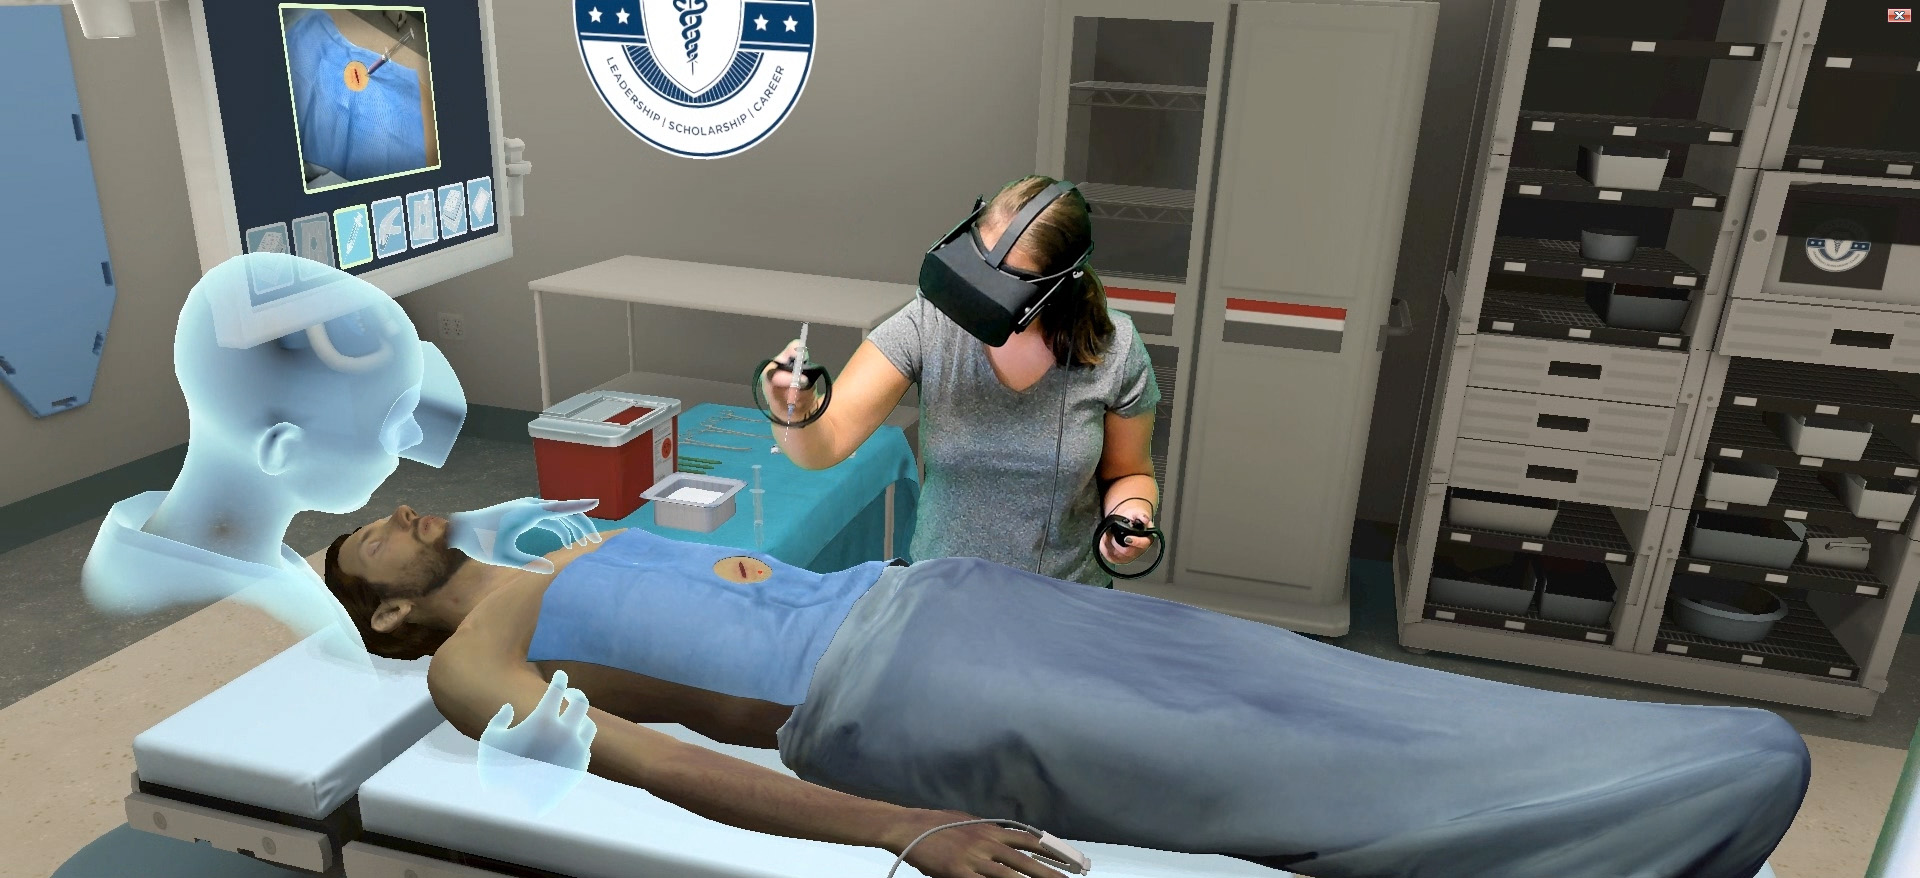 a virtual reality computer simulator reducing anxiety for children having medical procedures Through the use of virtual reality patients no longer have to use their imagination, they can instead be shown exactly what the doctors want them to see and help them work through it, while gradually increasing the threshold for just how traumatic the simulation gets.